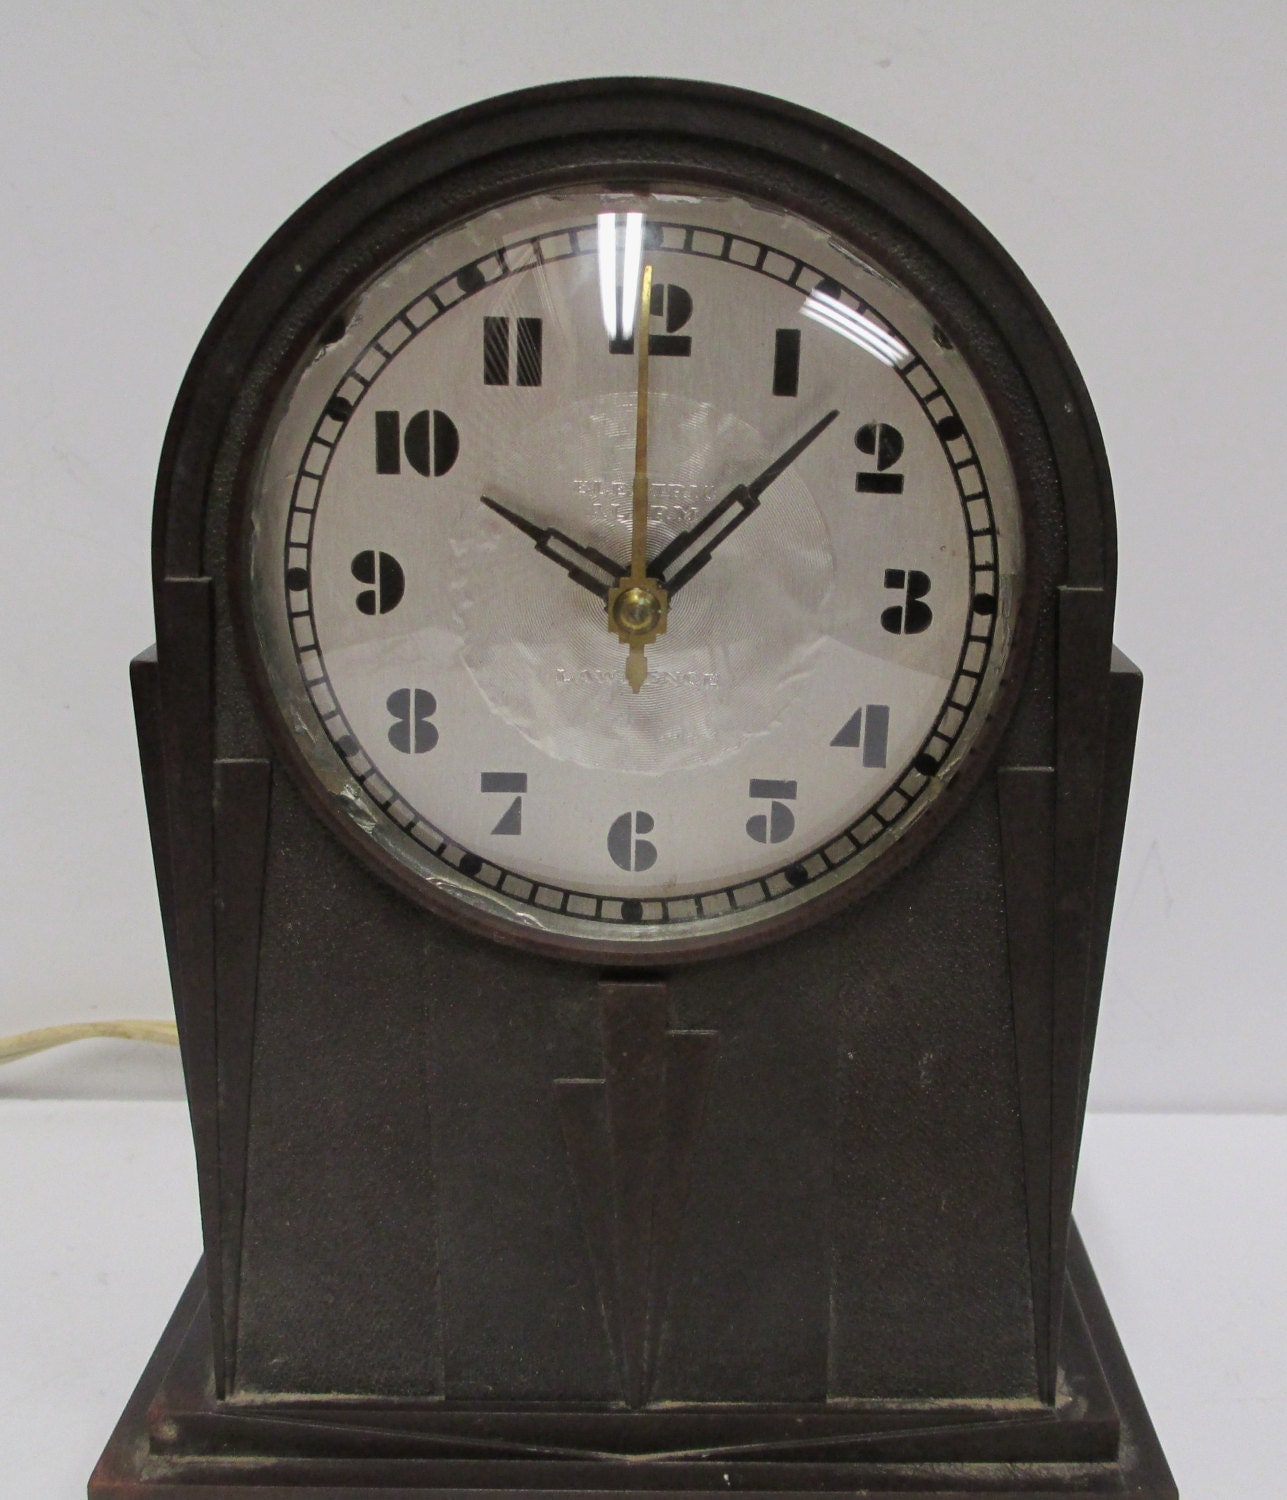 Antique art deco b e lawrence alarm clock vintage electric Art deco alarm clocks